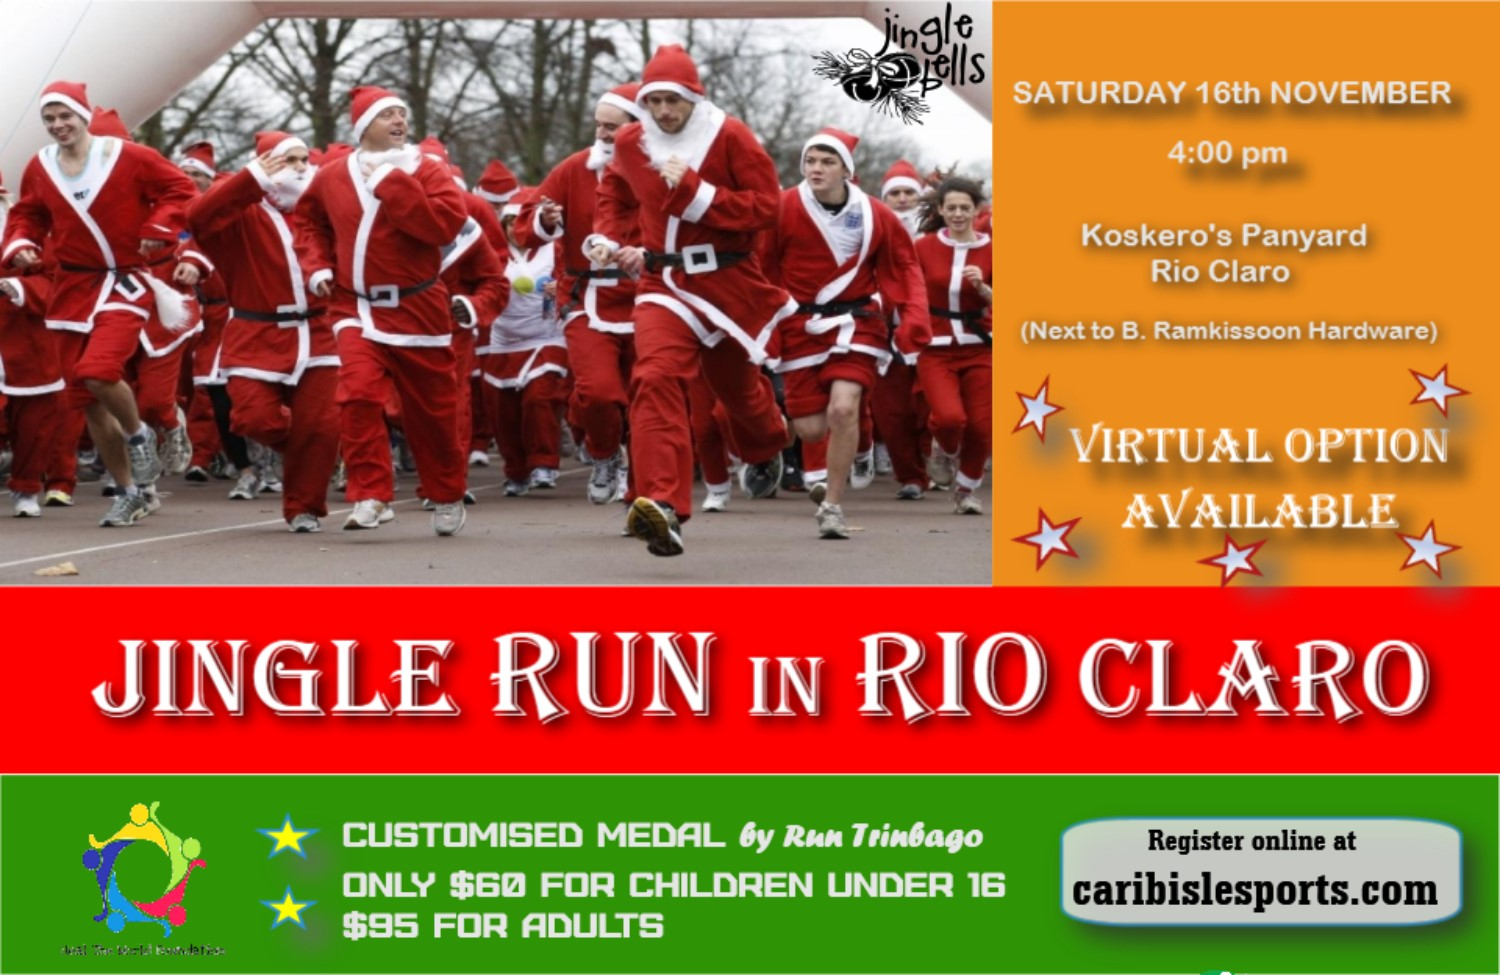 Jingle Run in Rio Claro